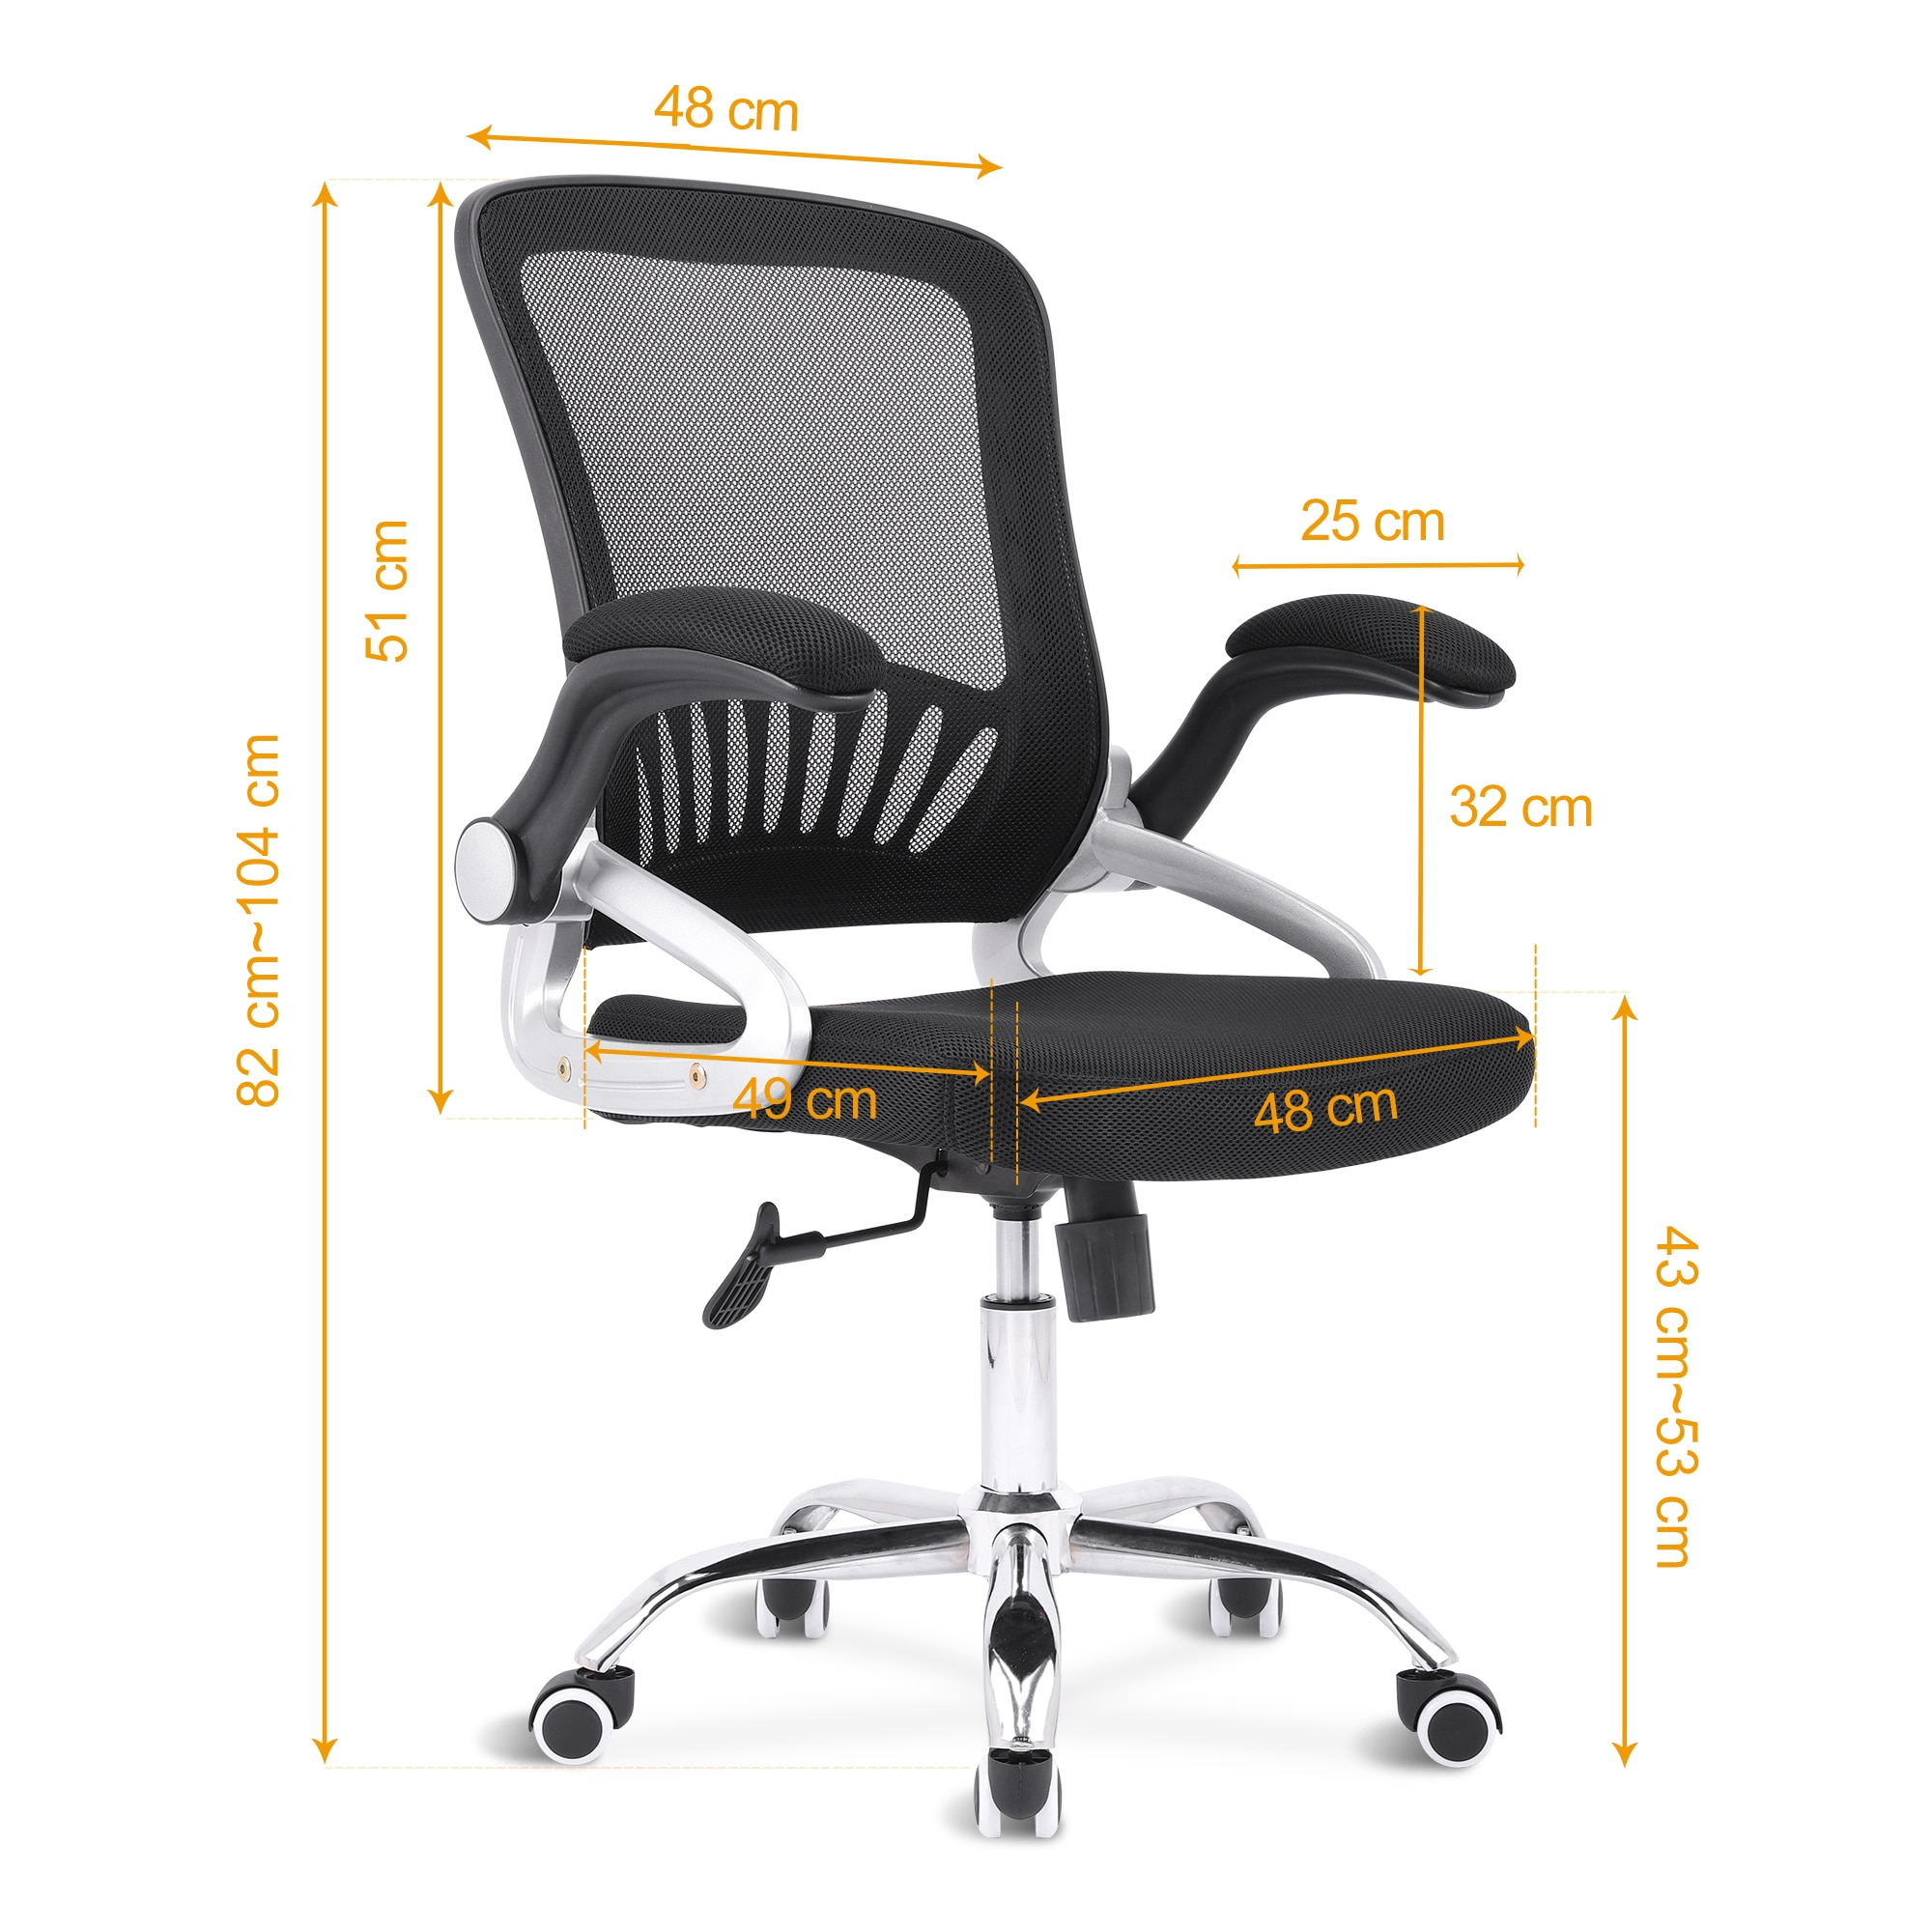 H607b3fce7fdd4f0f956a447ff6a53f913 - Sigtua Swivel Office Chair Height-adjustable Desk Chair Breathable PC Chair Comfortable Ergonomic Executive Computer Chair Black